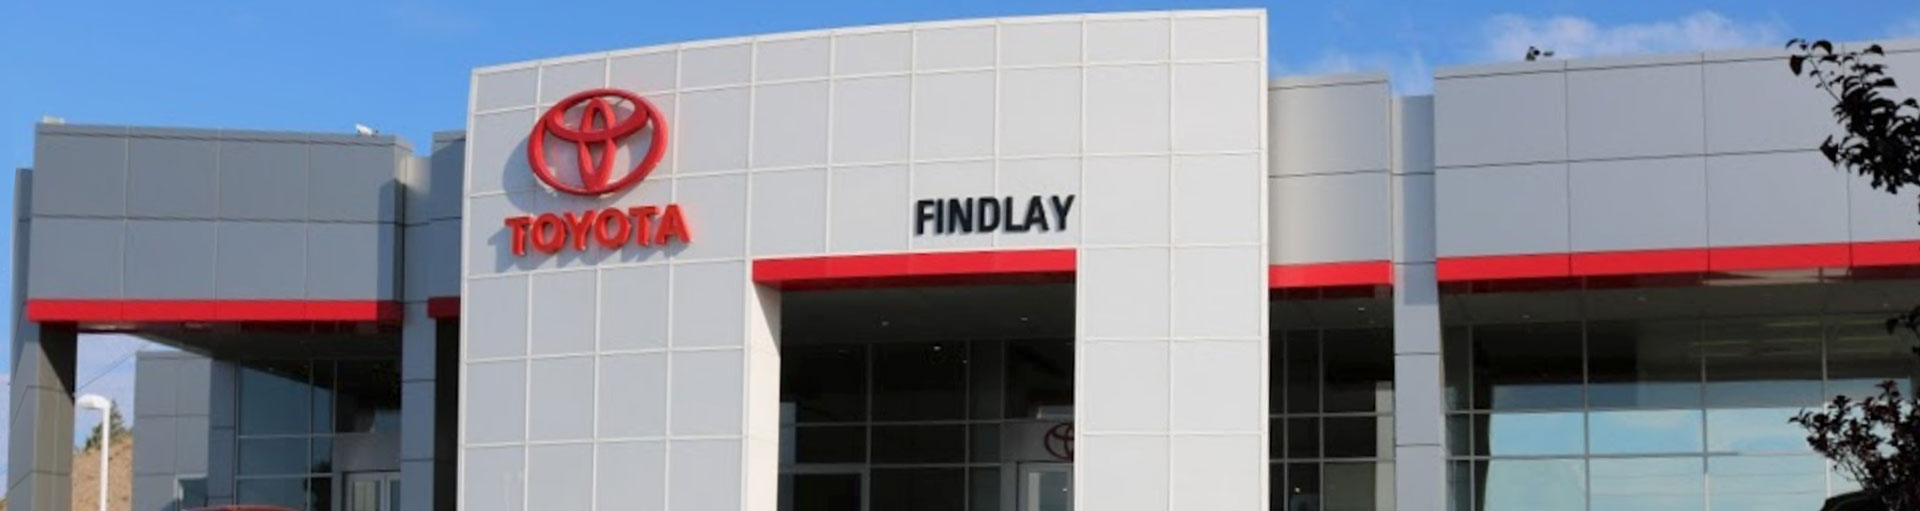 Service & Parts Specials Findlay Toyota of Prescott